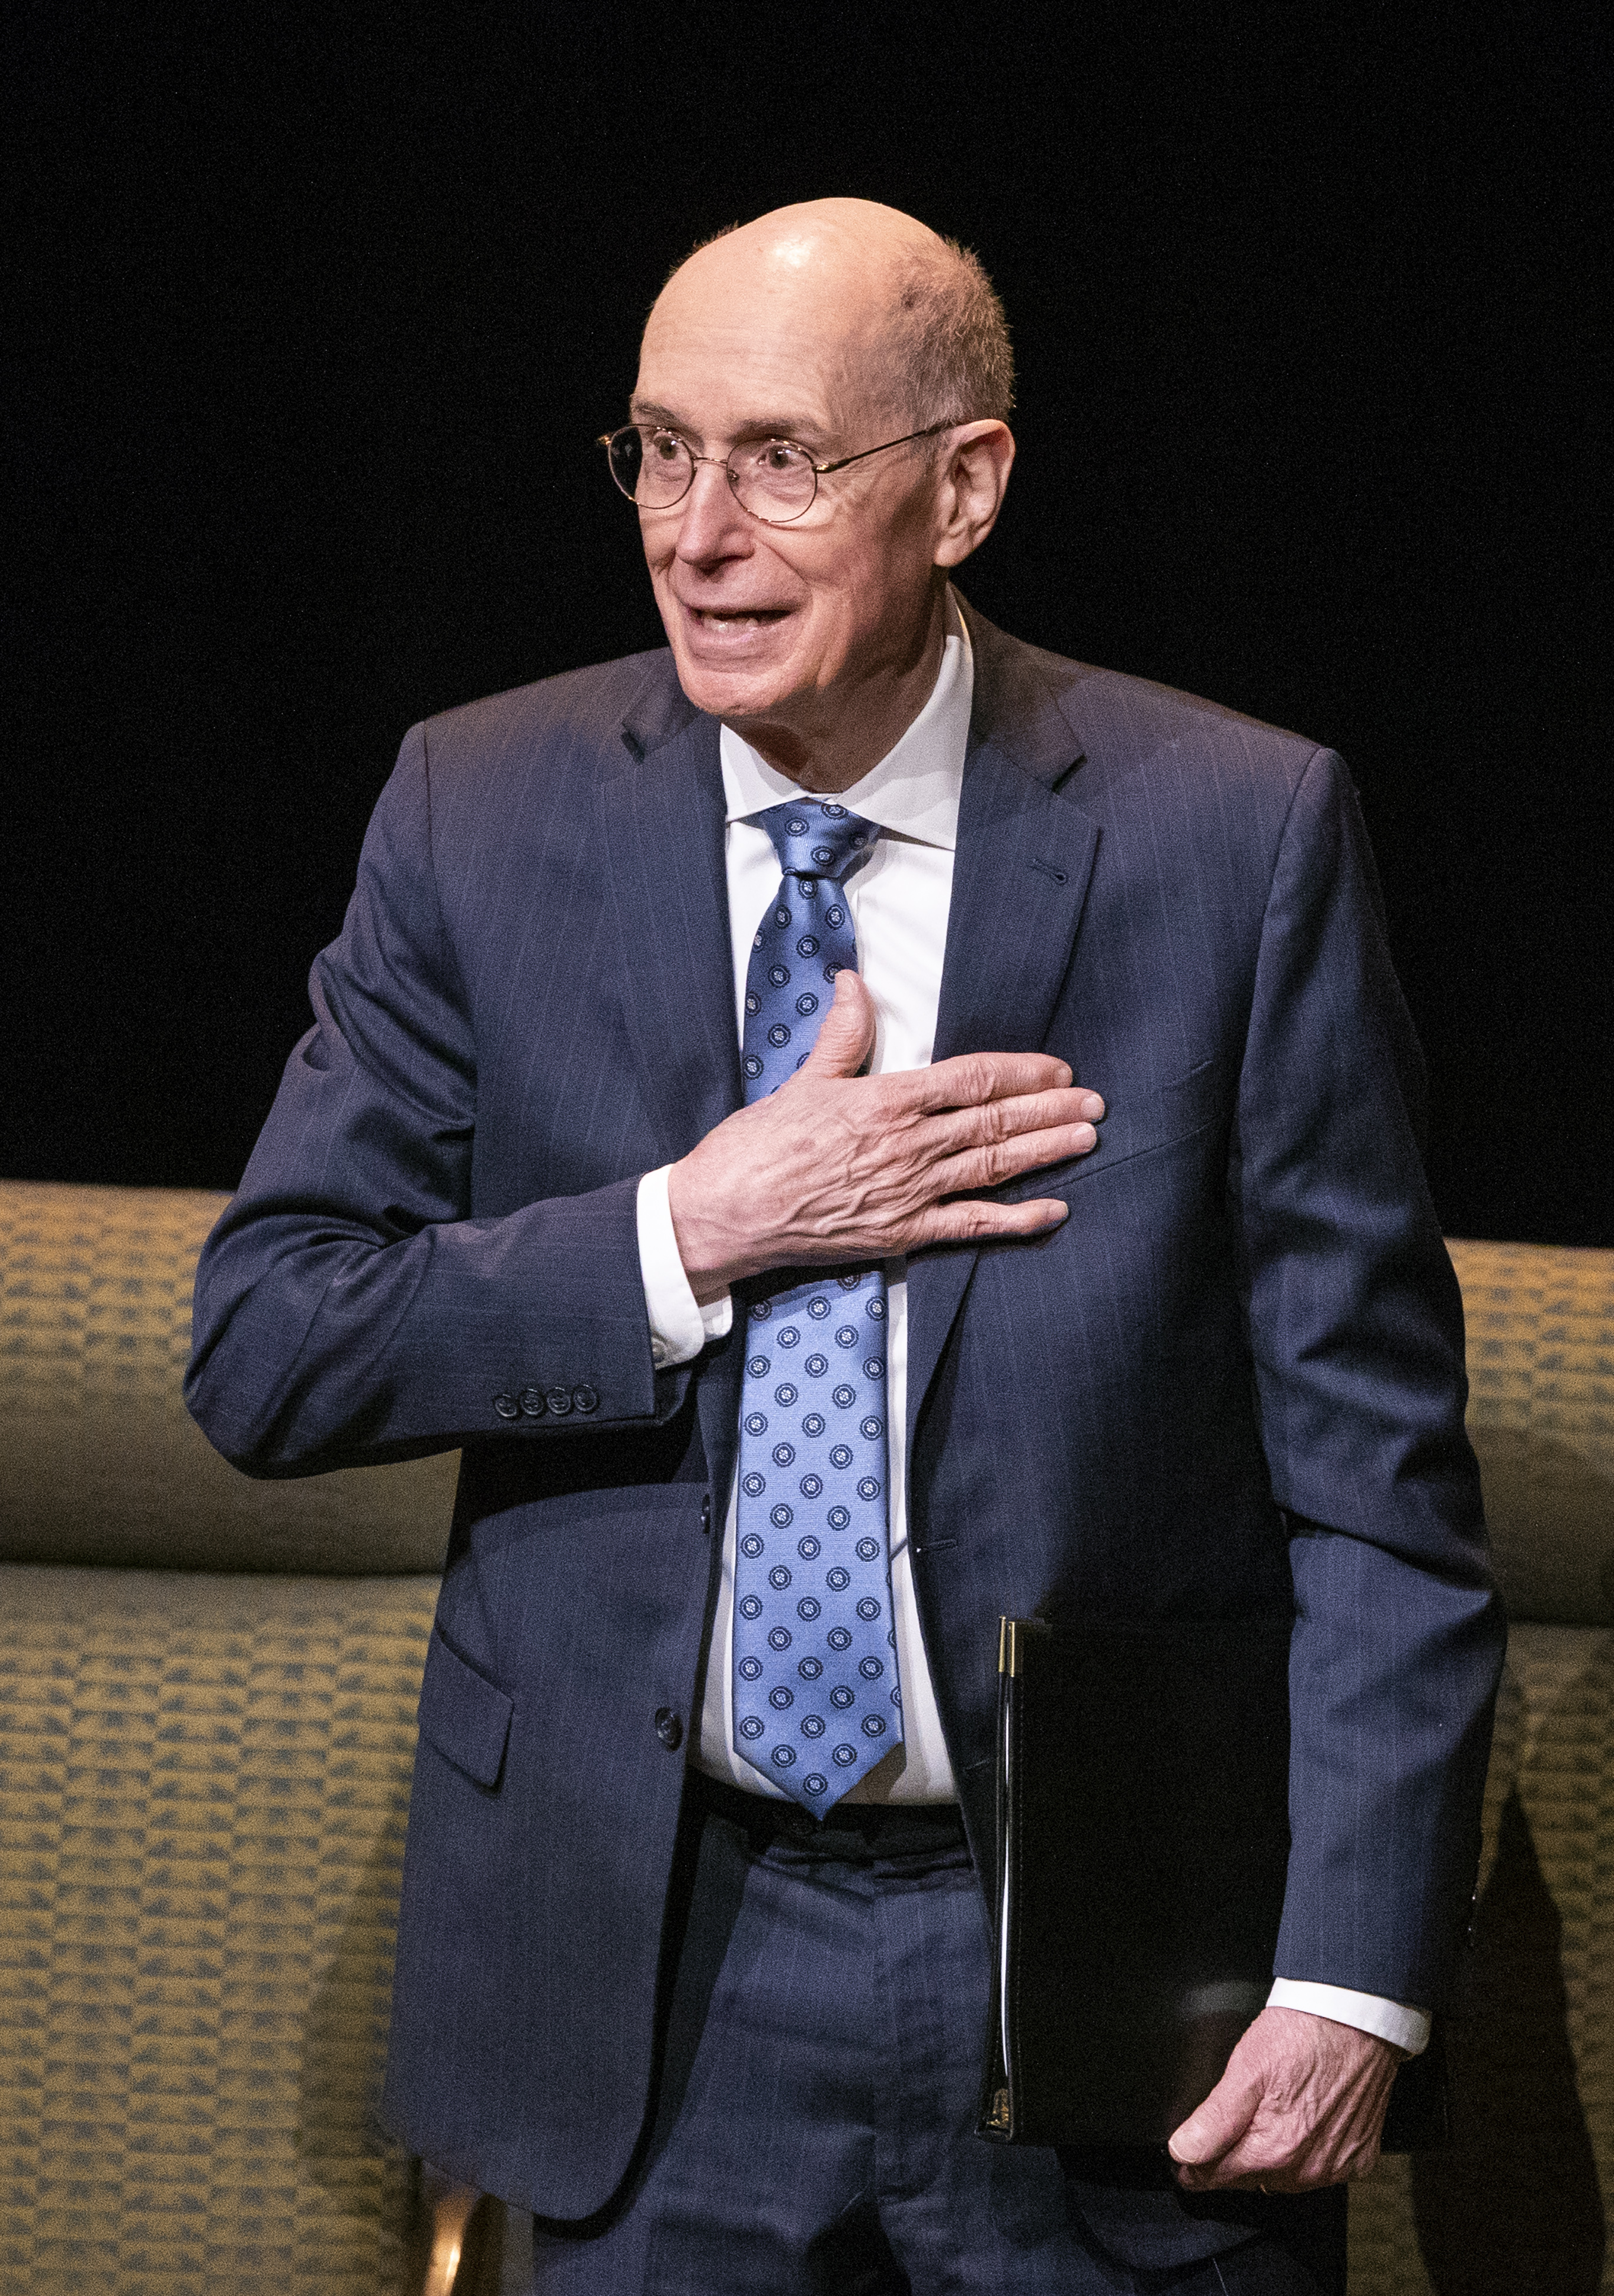 President Henry B. Eyring acknowledges the crowd as he exits after speaking to LDS Business College students at a devotional in the Conference Center Theater in Salt Lake City on Tuesday, Nov. 6, 2018.